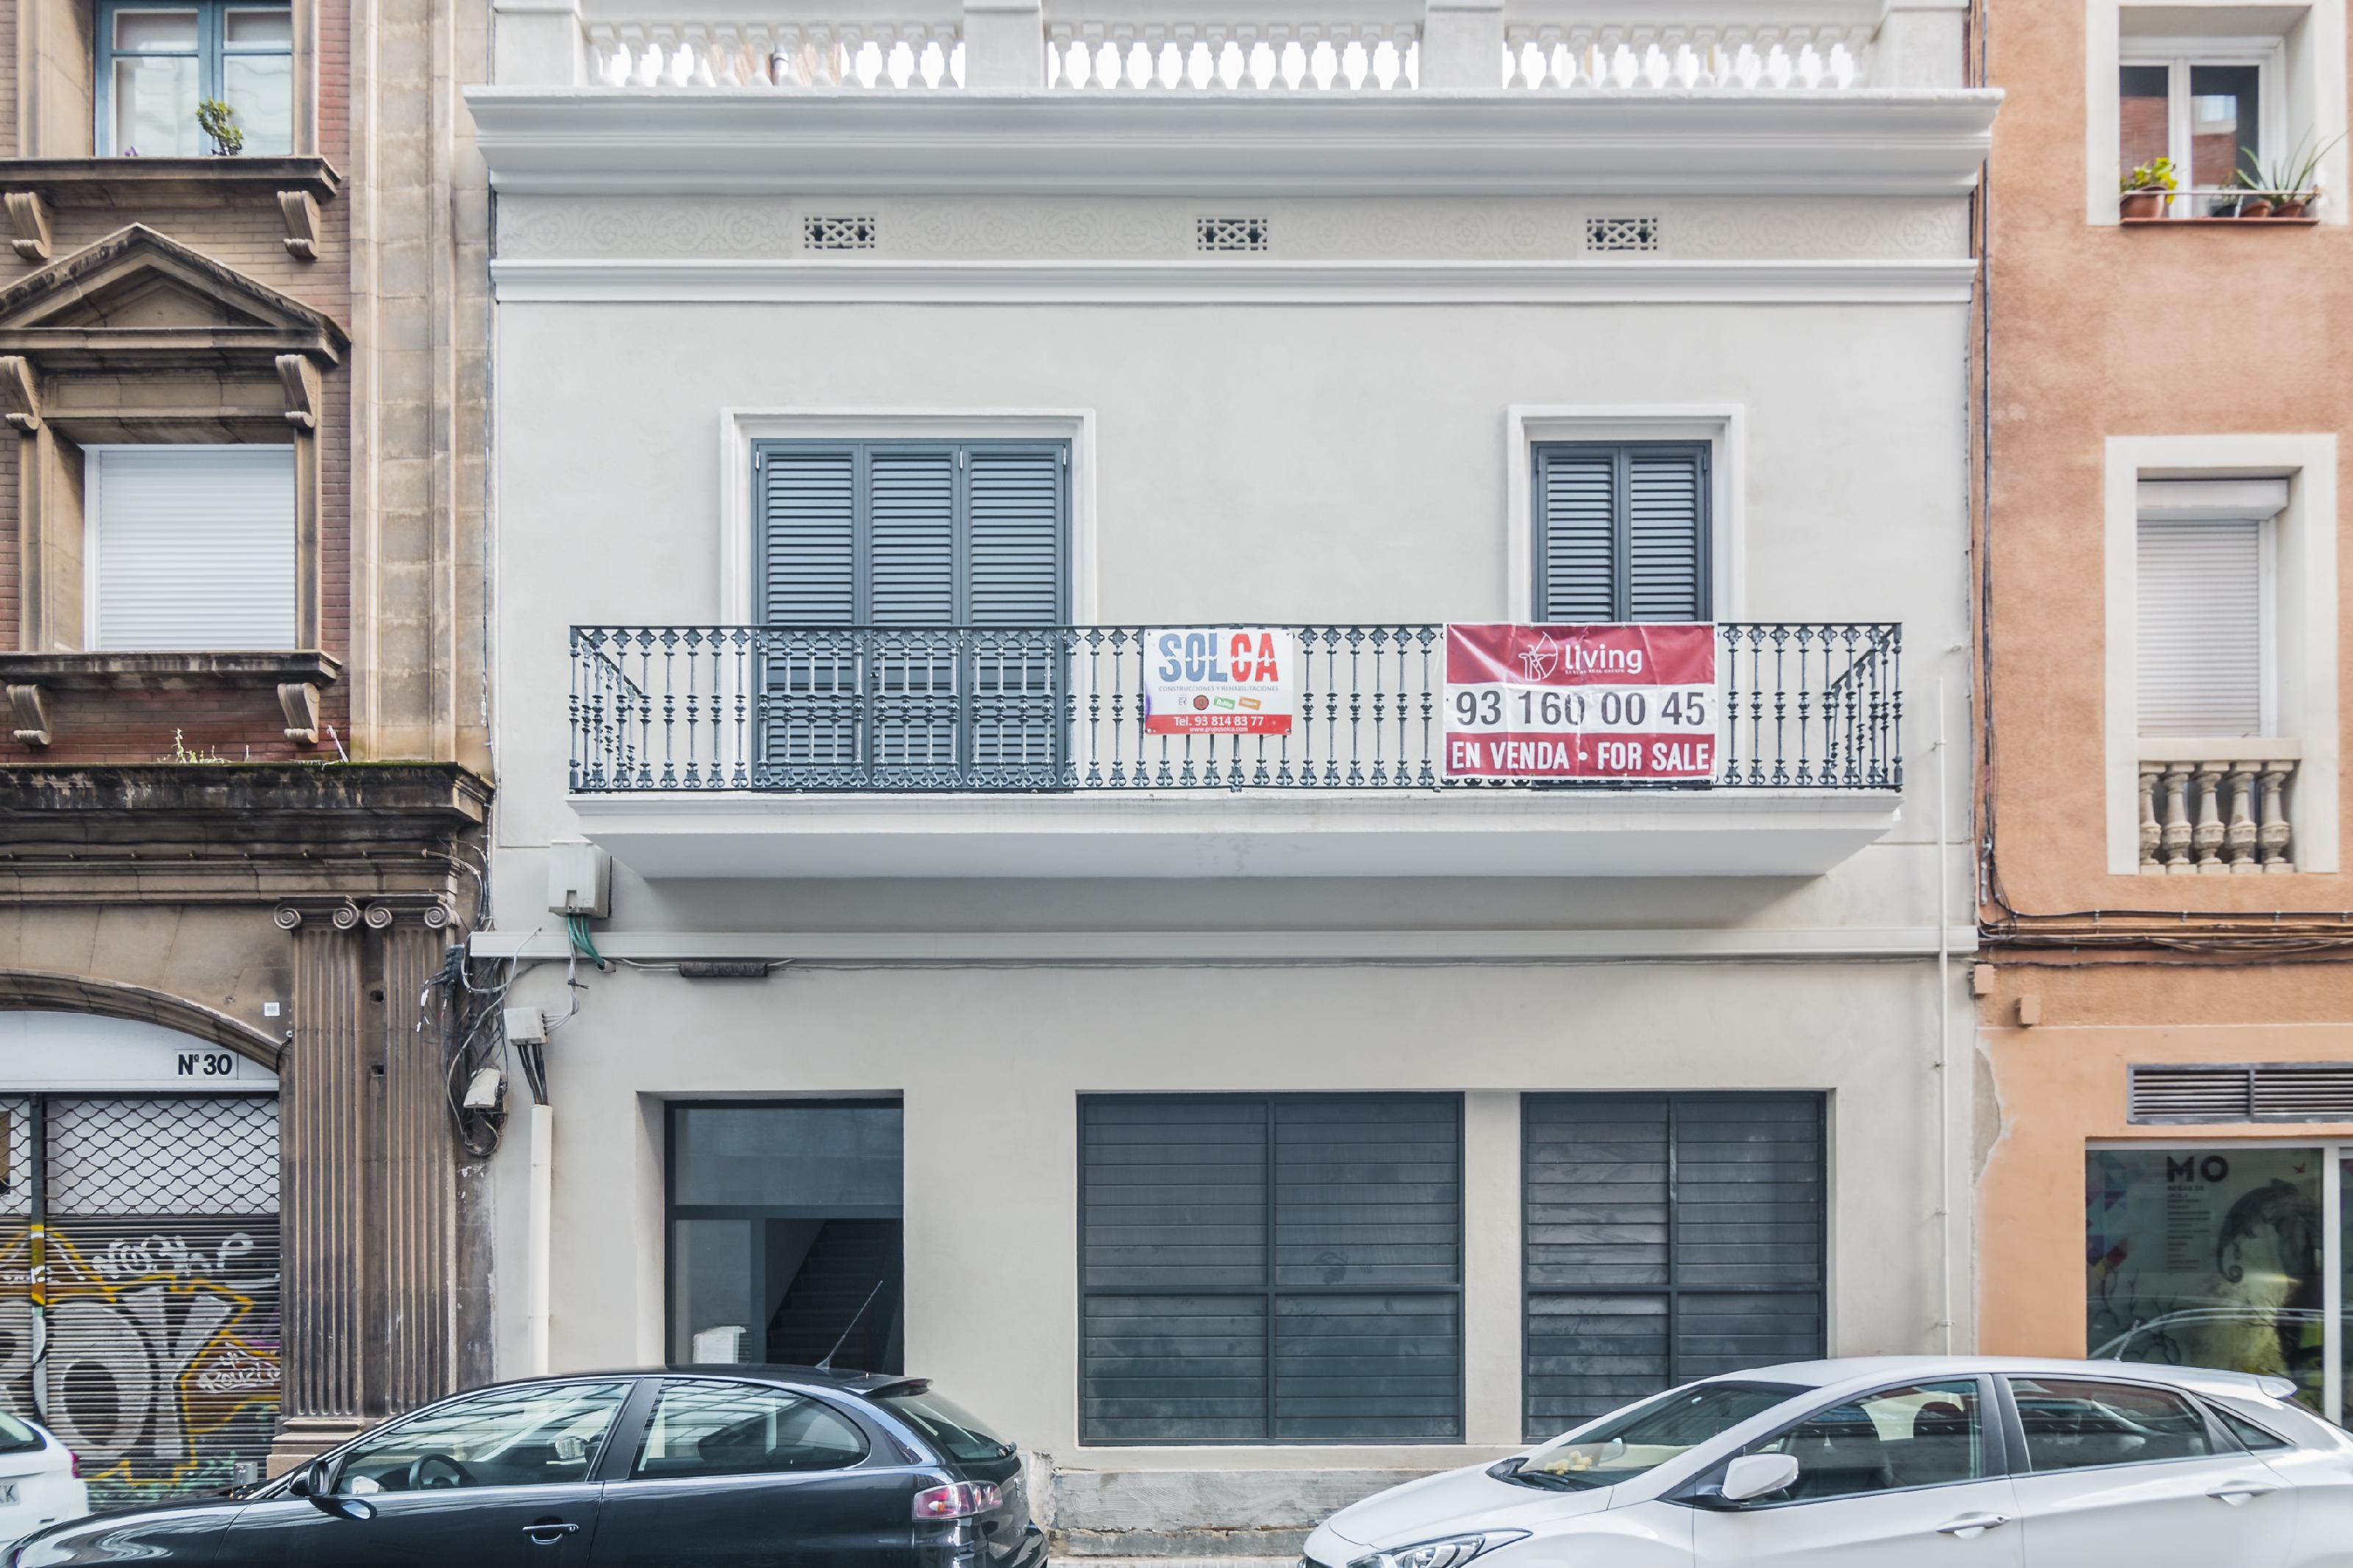 220650 Ground floor for sale in Sarrià-Sant Gervasi, Sant Gervasi-Galvany 22